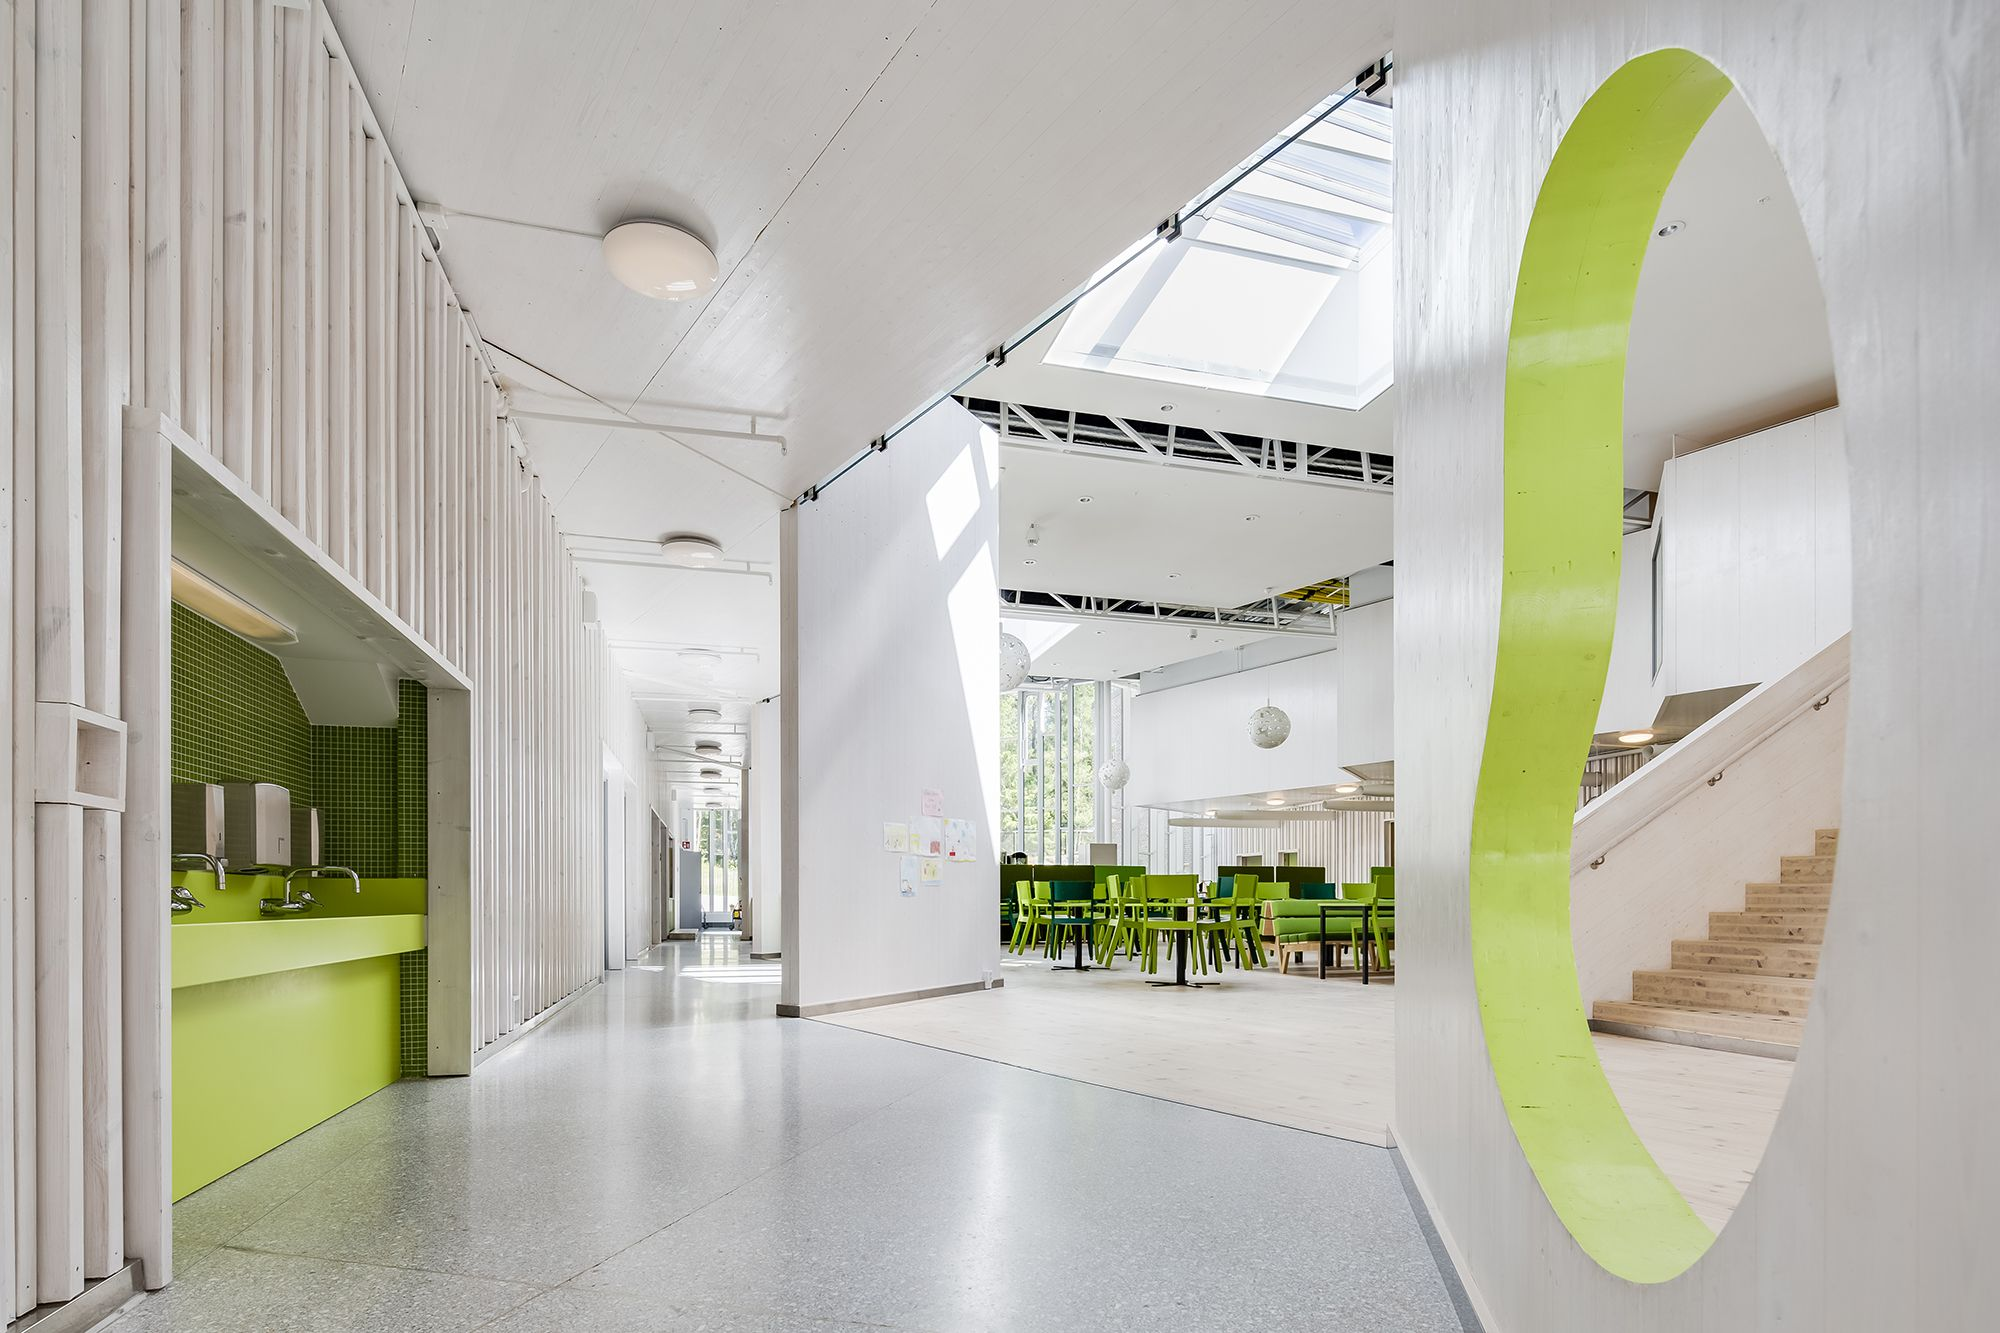 Our Goal For Brinkskolan Was To Create A Safe School Environment Which Puts  Pupils And Teachers First. As The Architects Of The Project, We Were Given  A ...